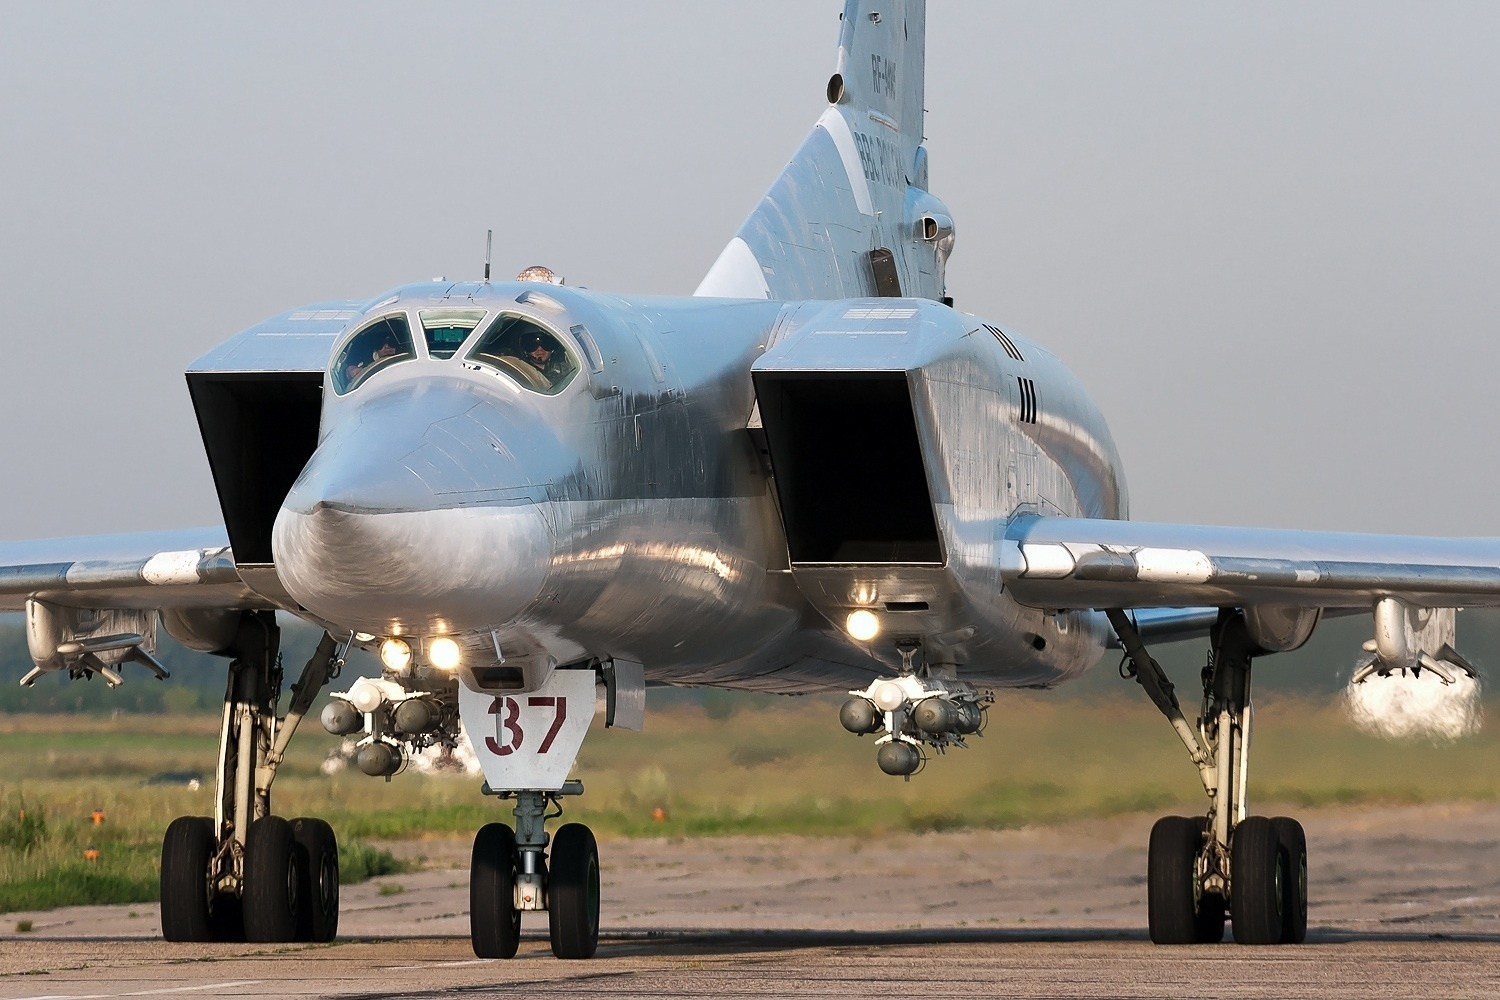 su 34 in syria with File Tupolev Tu 22m 3m  Russia   Air Force An2219027 on 50824597 as well 201511251019803901 Syrie Guerre Avion Russe also Mi28 Night Hunter Attack Helicopter Helmet also Russian Su 34  bat Aircraft furthermore Planes2.